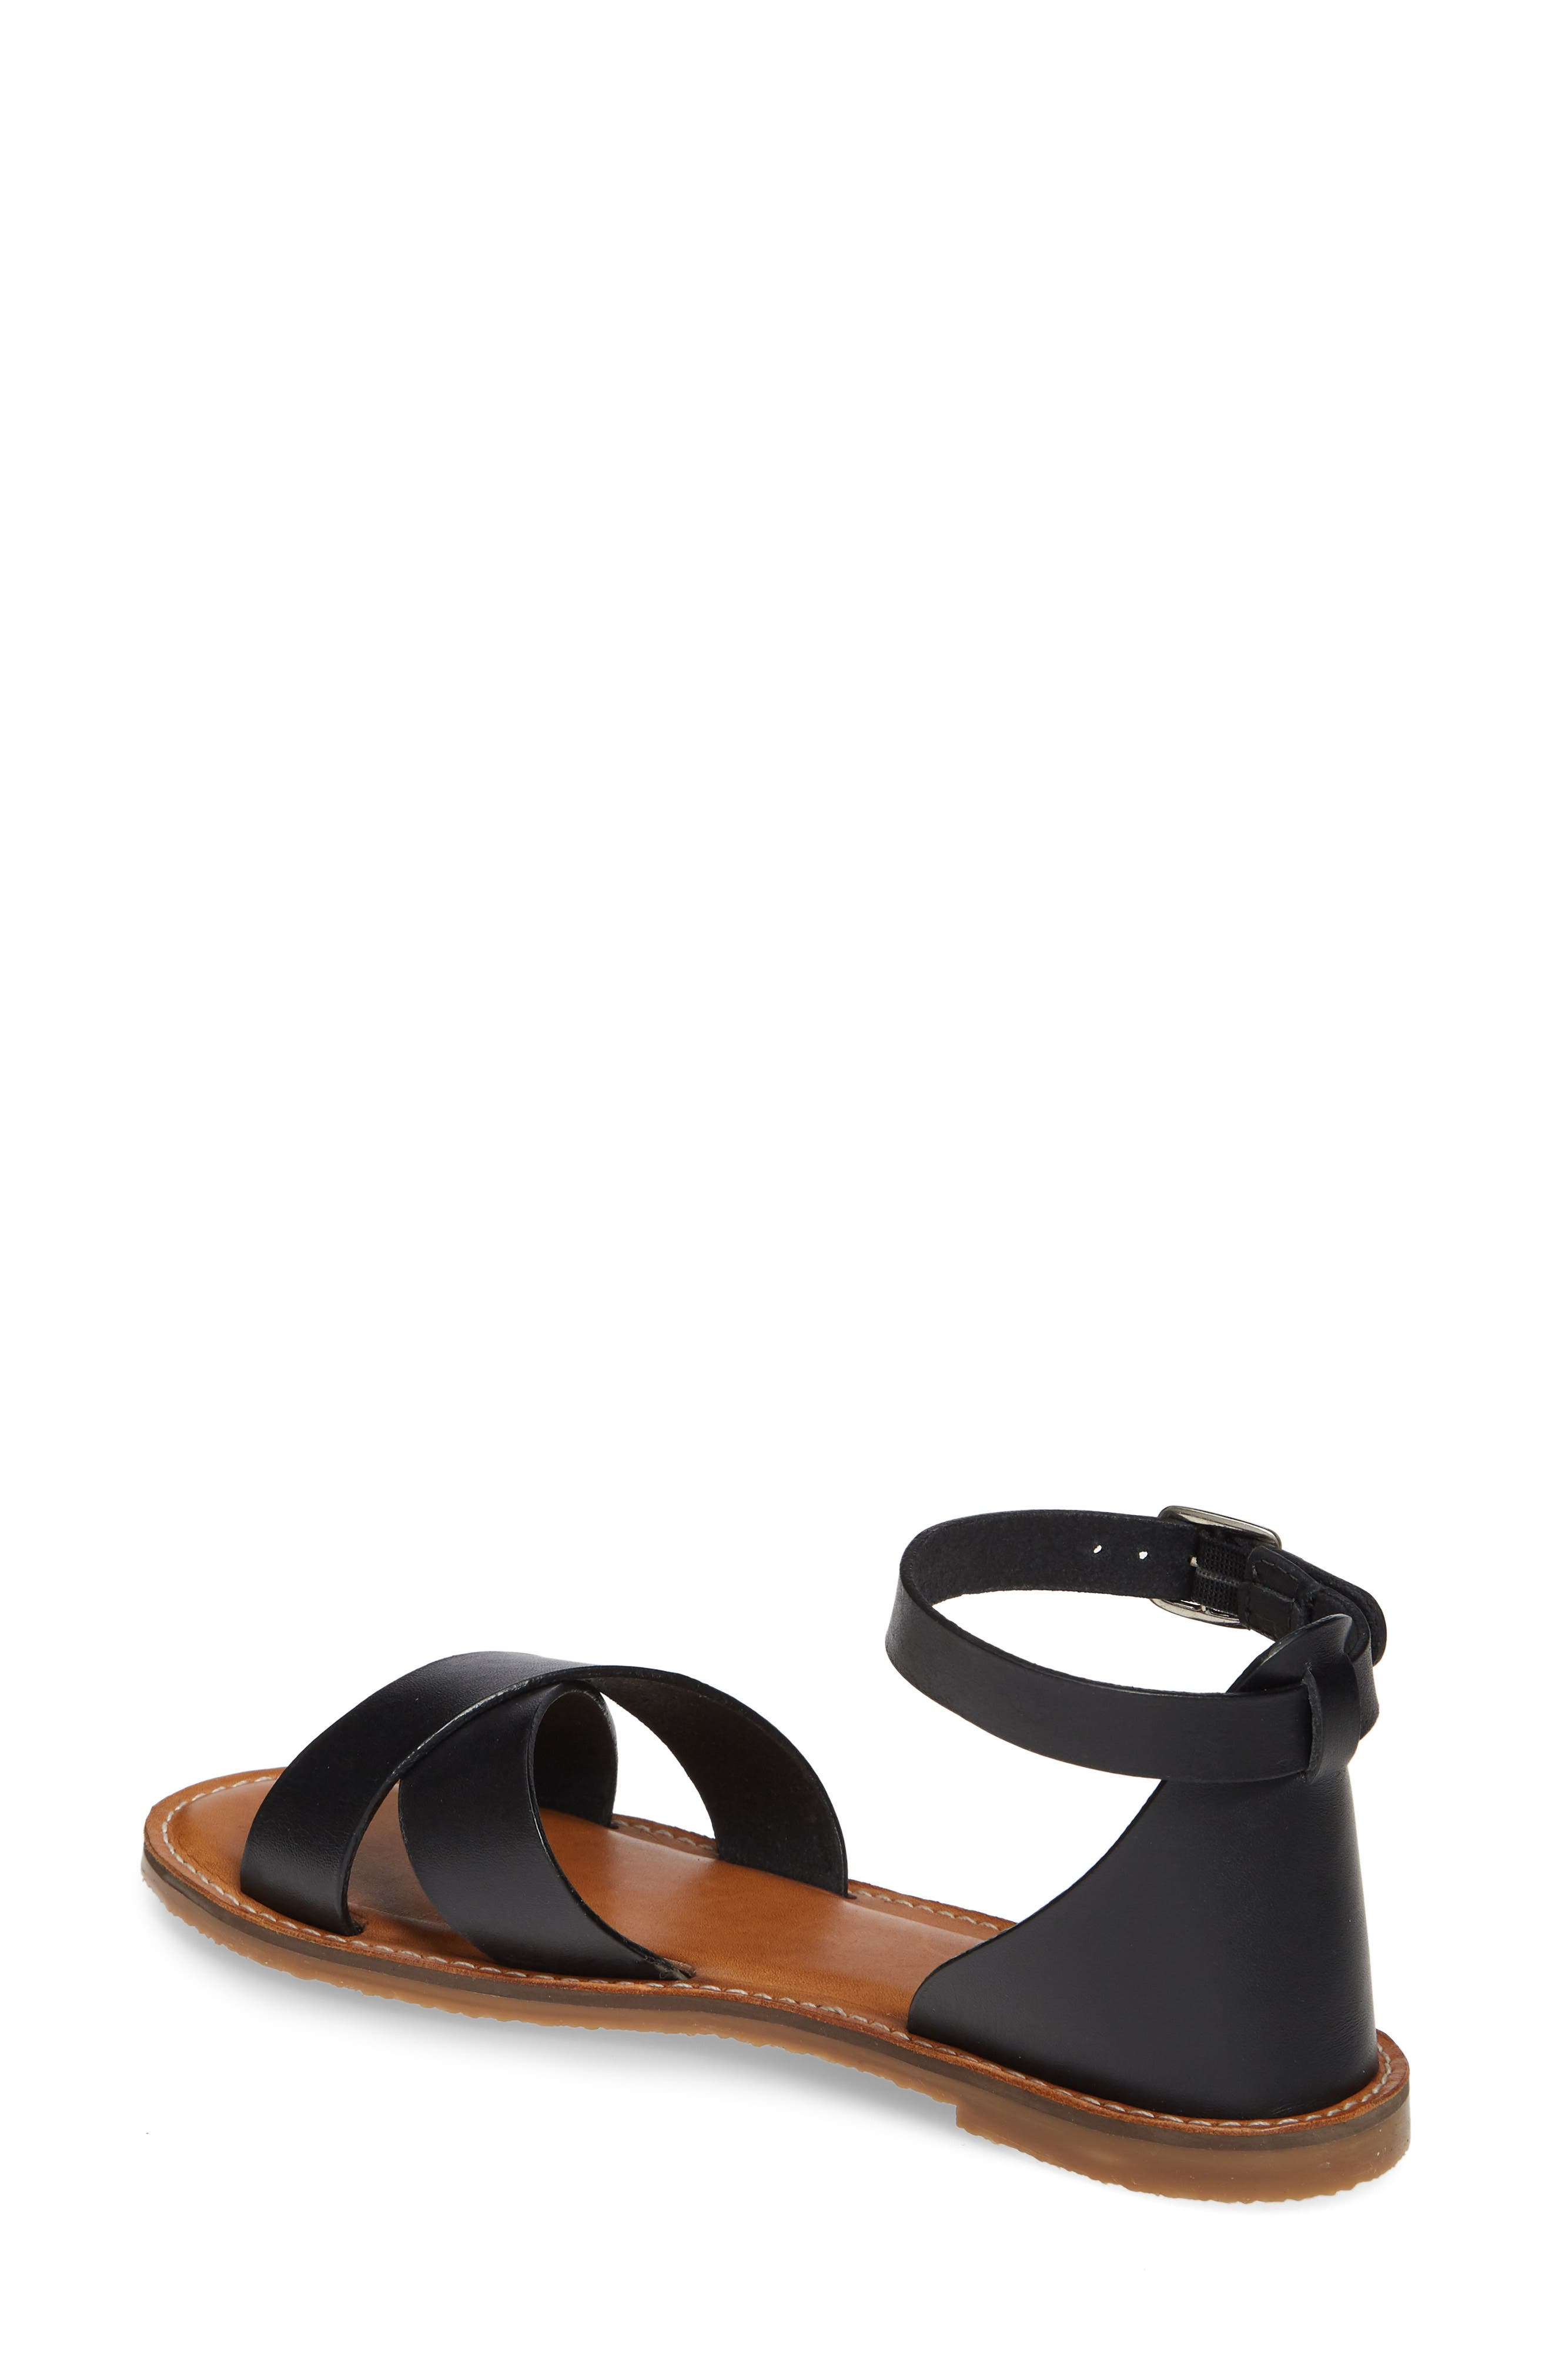 CASLON<SUP>®</SUP>, Oliver Sandal, Alternate thumbnail 2, color, BLACK LEATHER